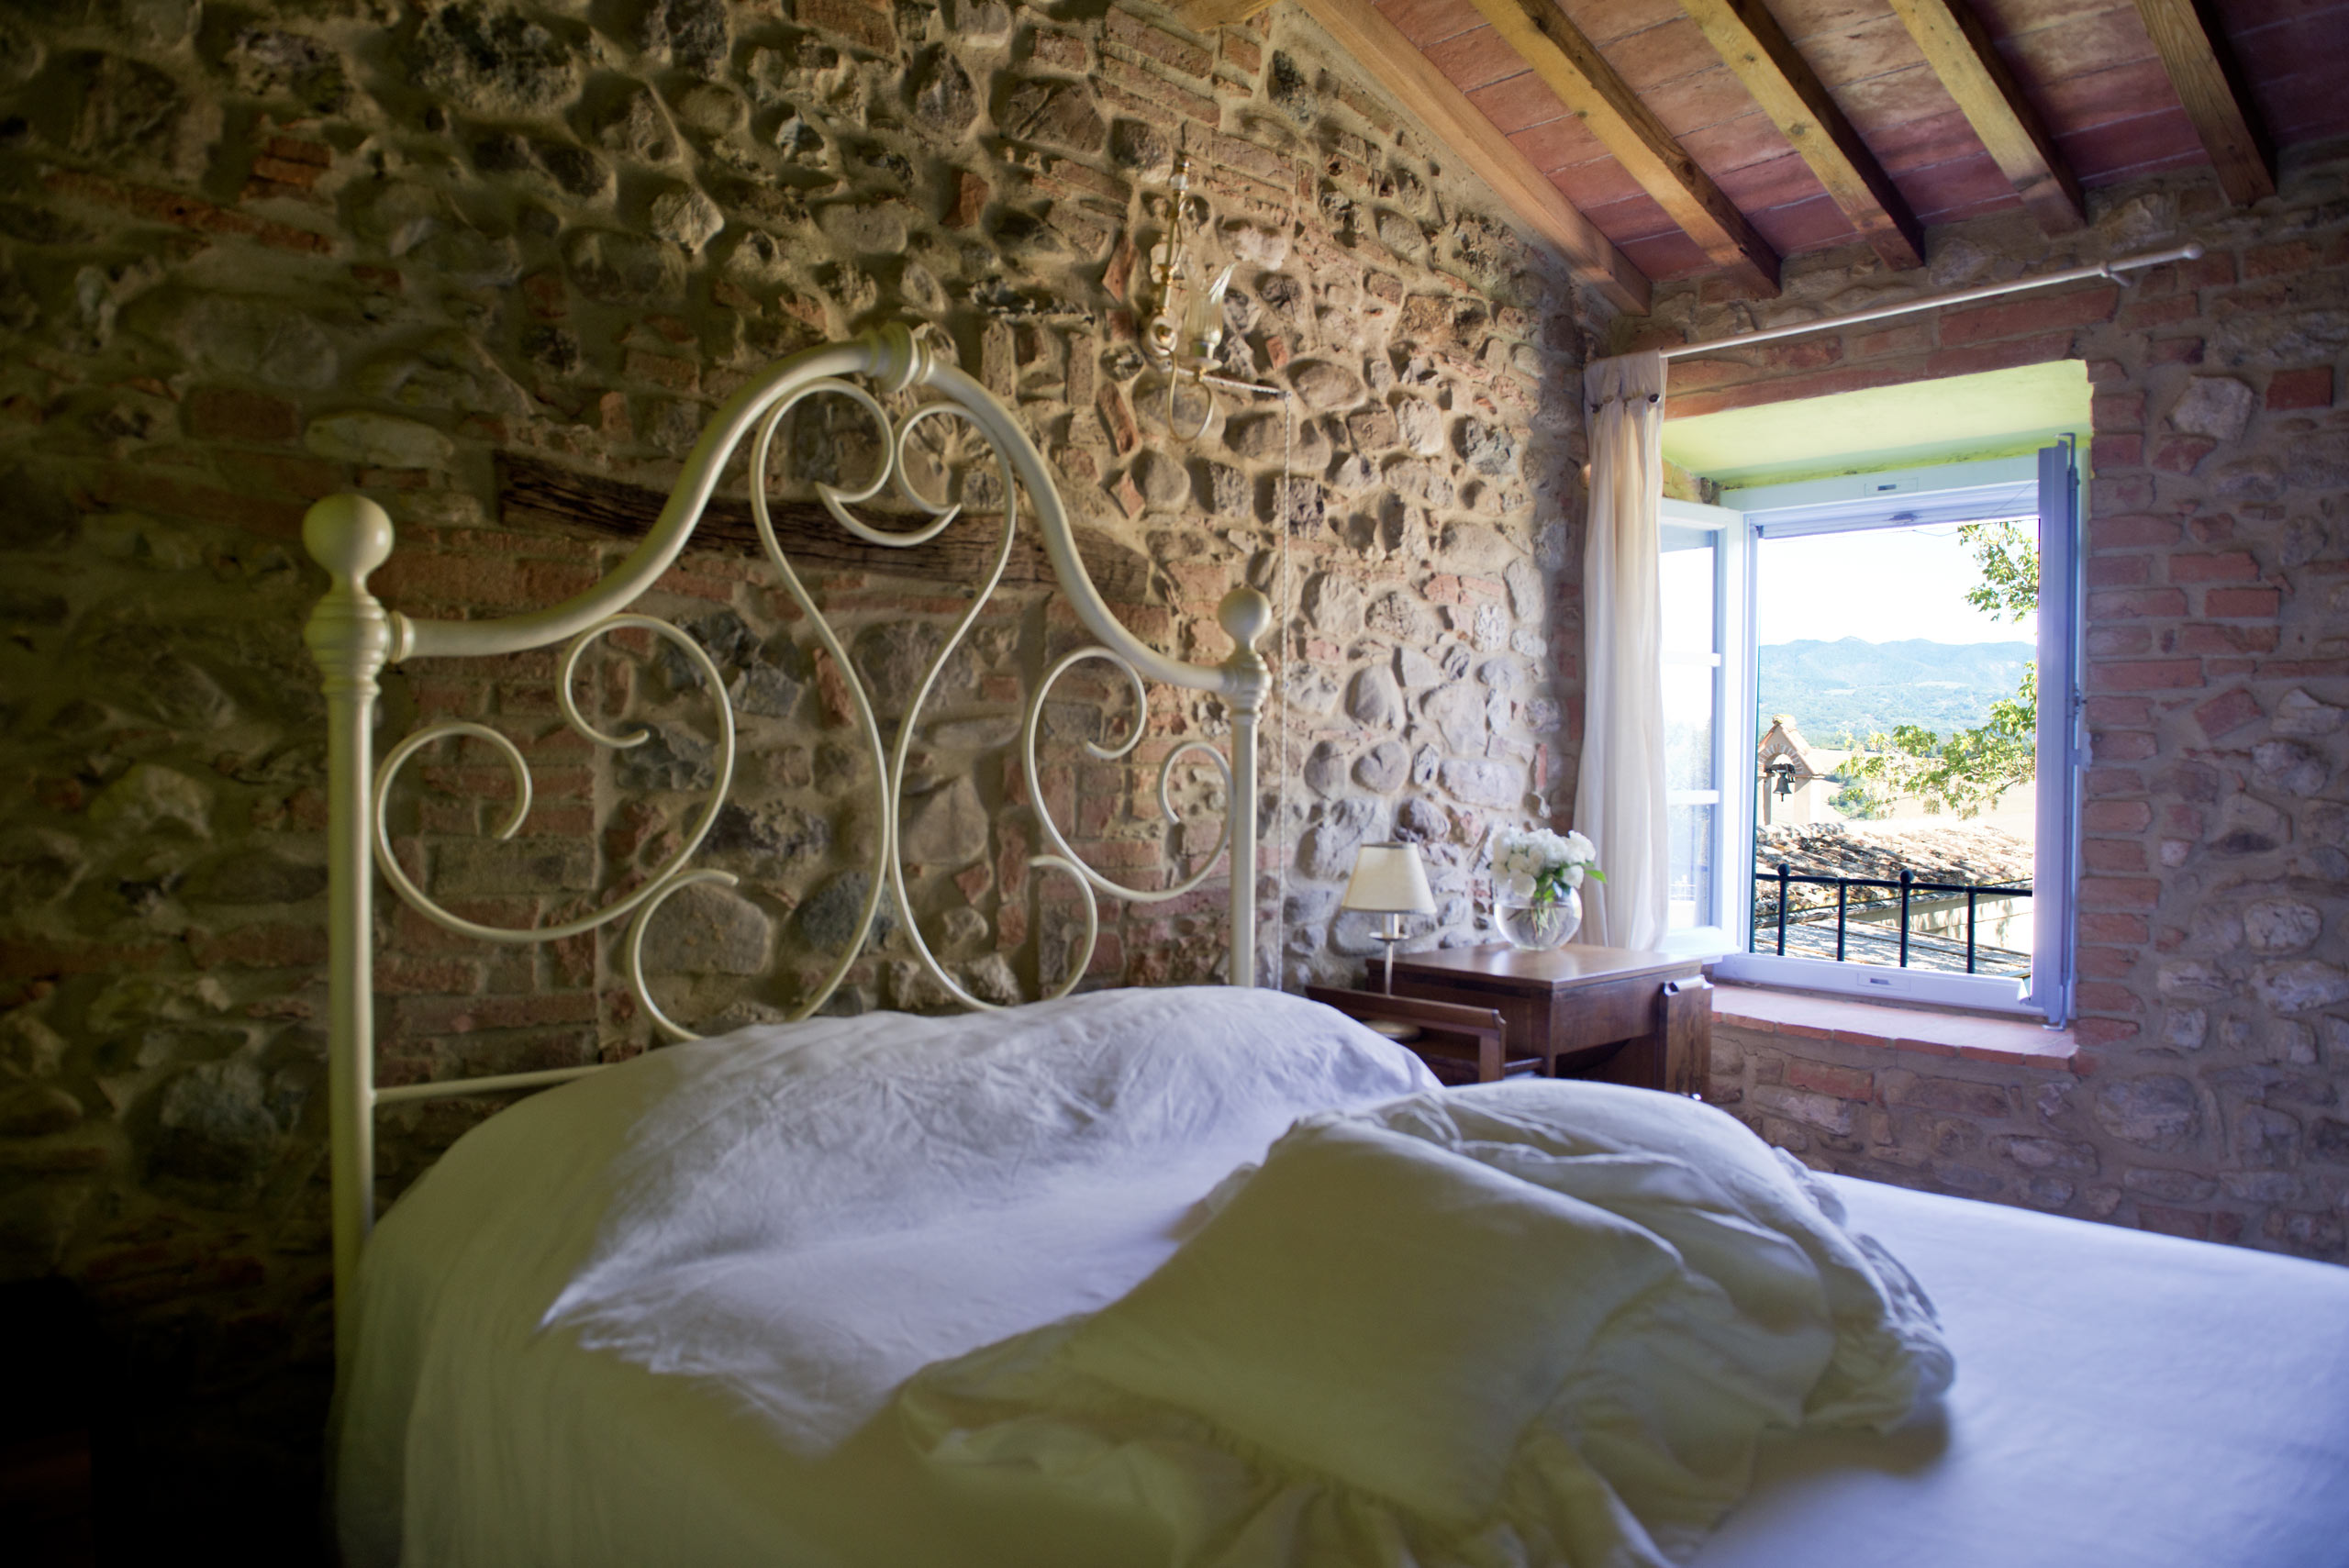 essenza-di-limone-luxury-tuscnay-accomodation